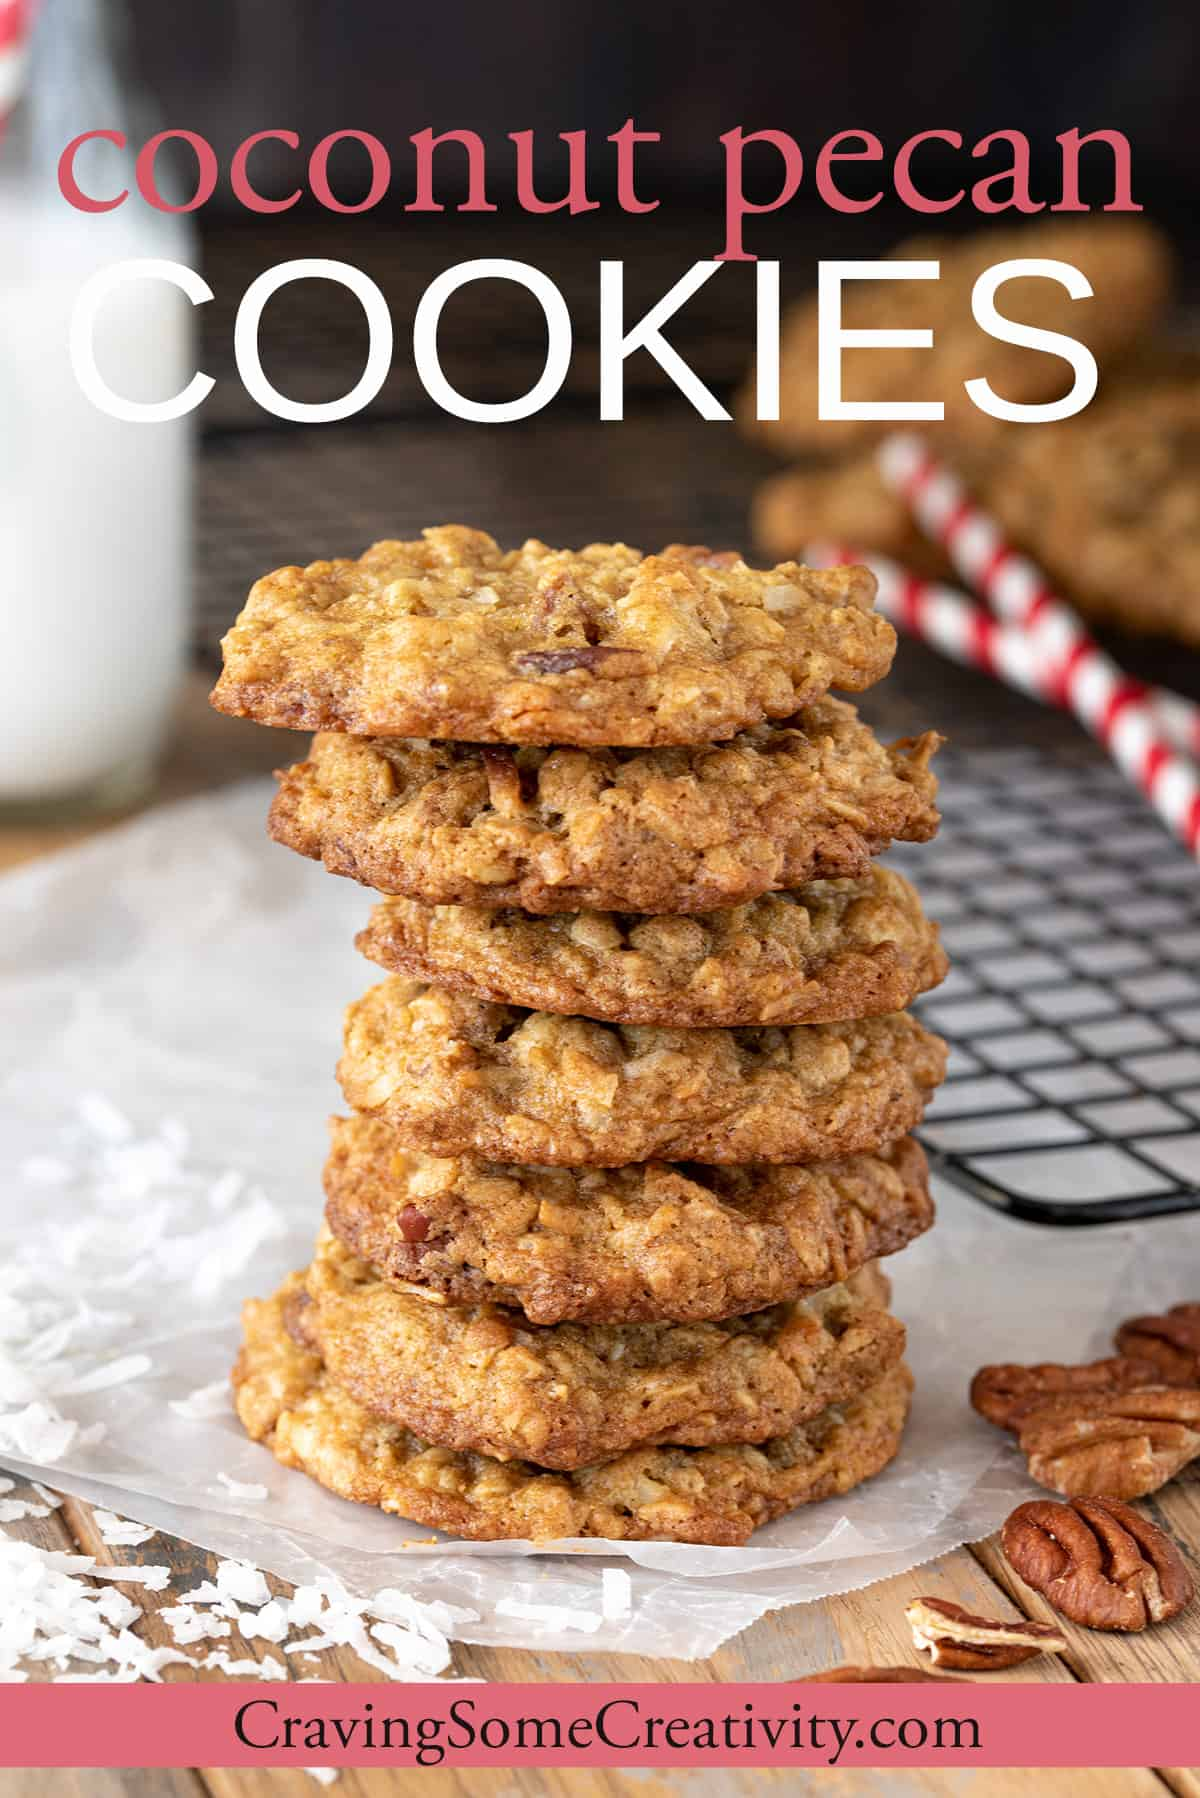 Coconut Pecan Cookies stacked in front with glass of milk and cookies in the background on a cookie sheet.